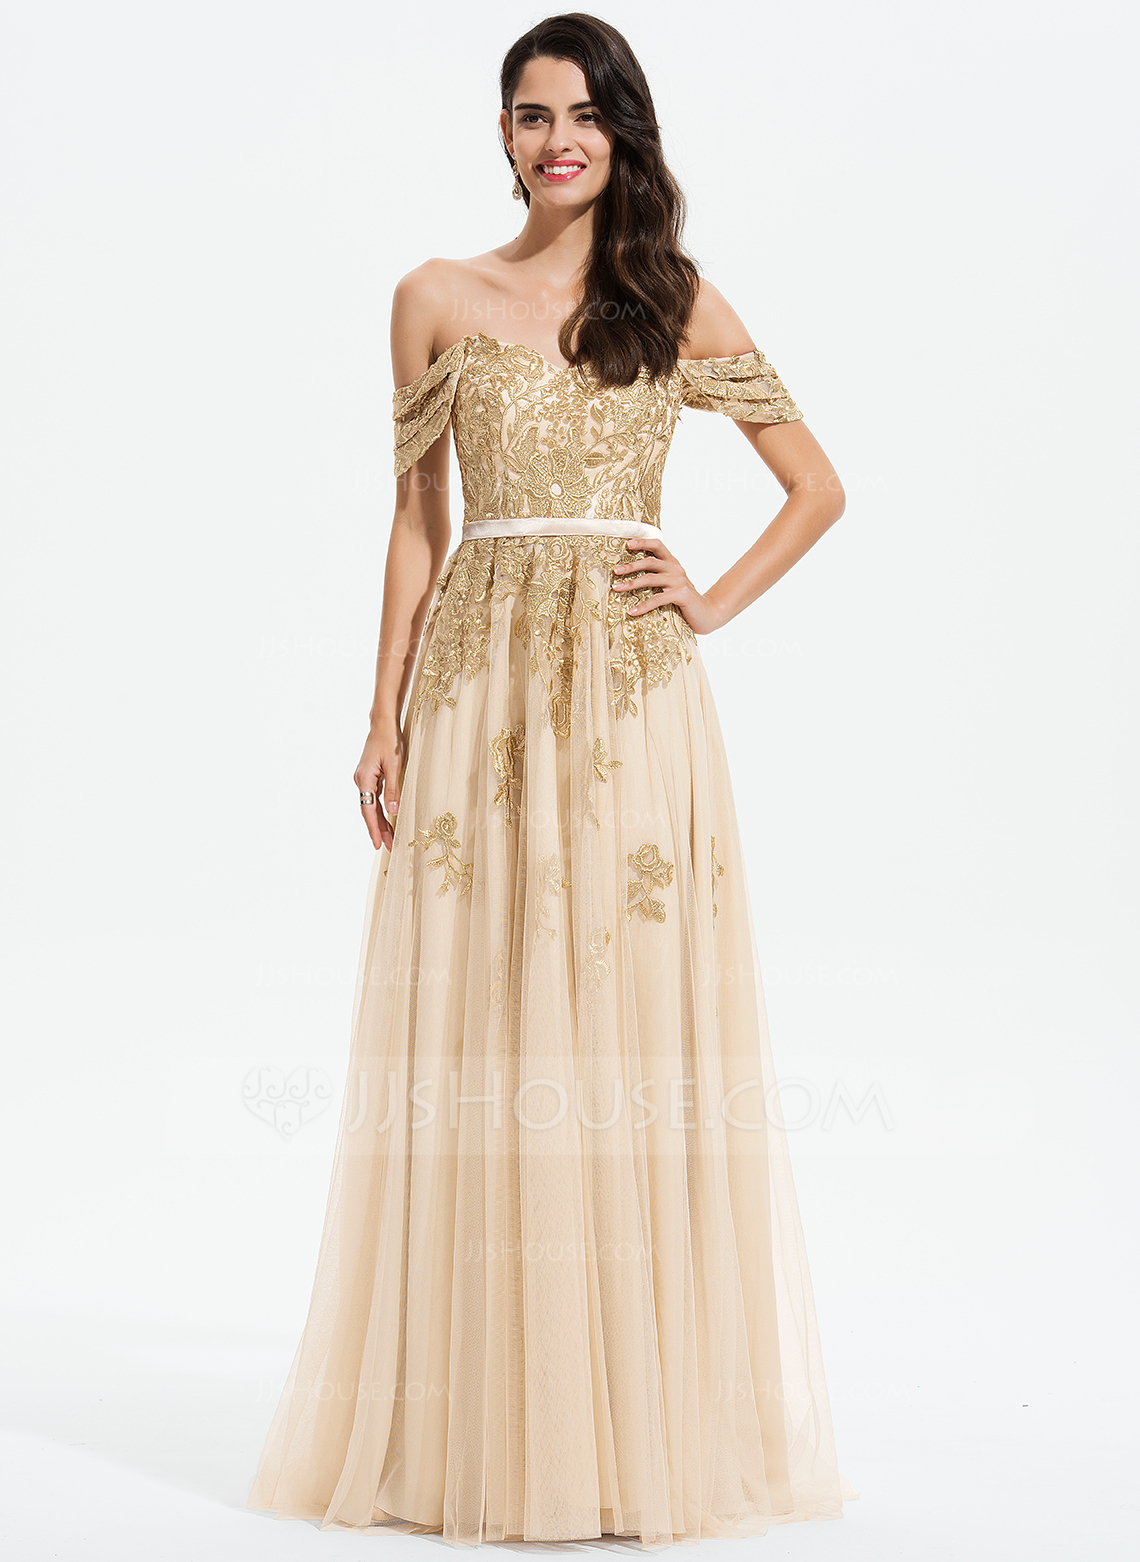 A-Line Off-the-Shoulder Sweep Train Tulle Prom Dresses With Lace